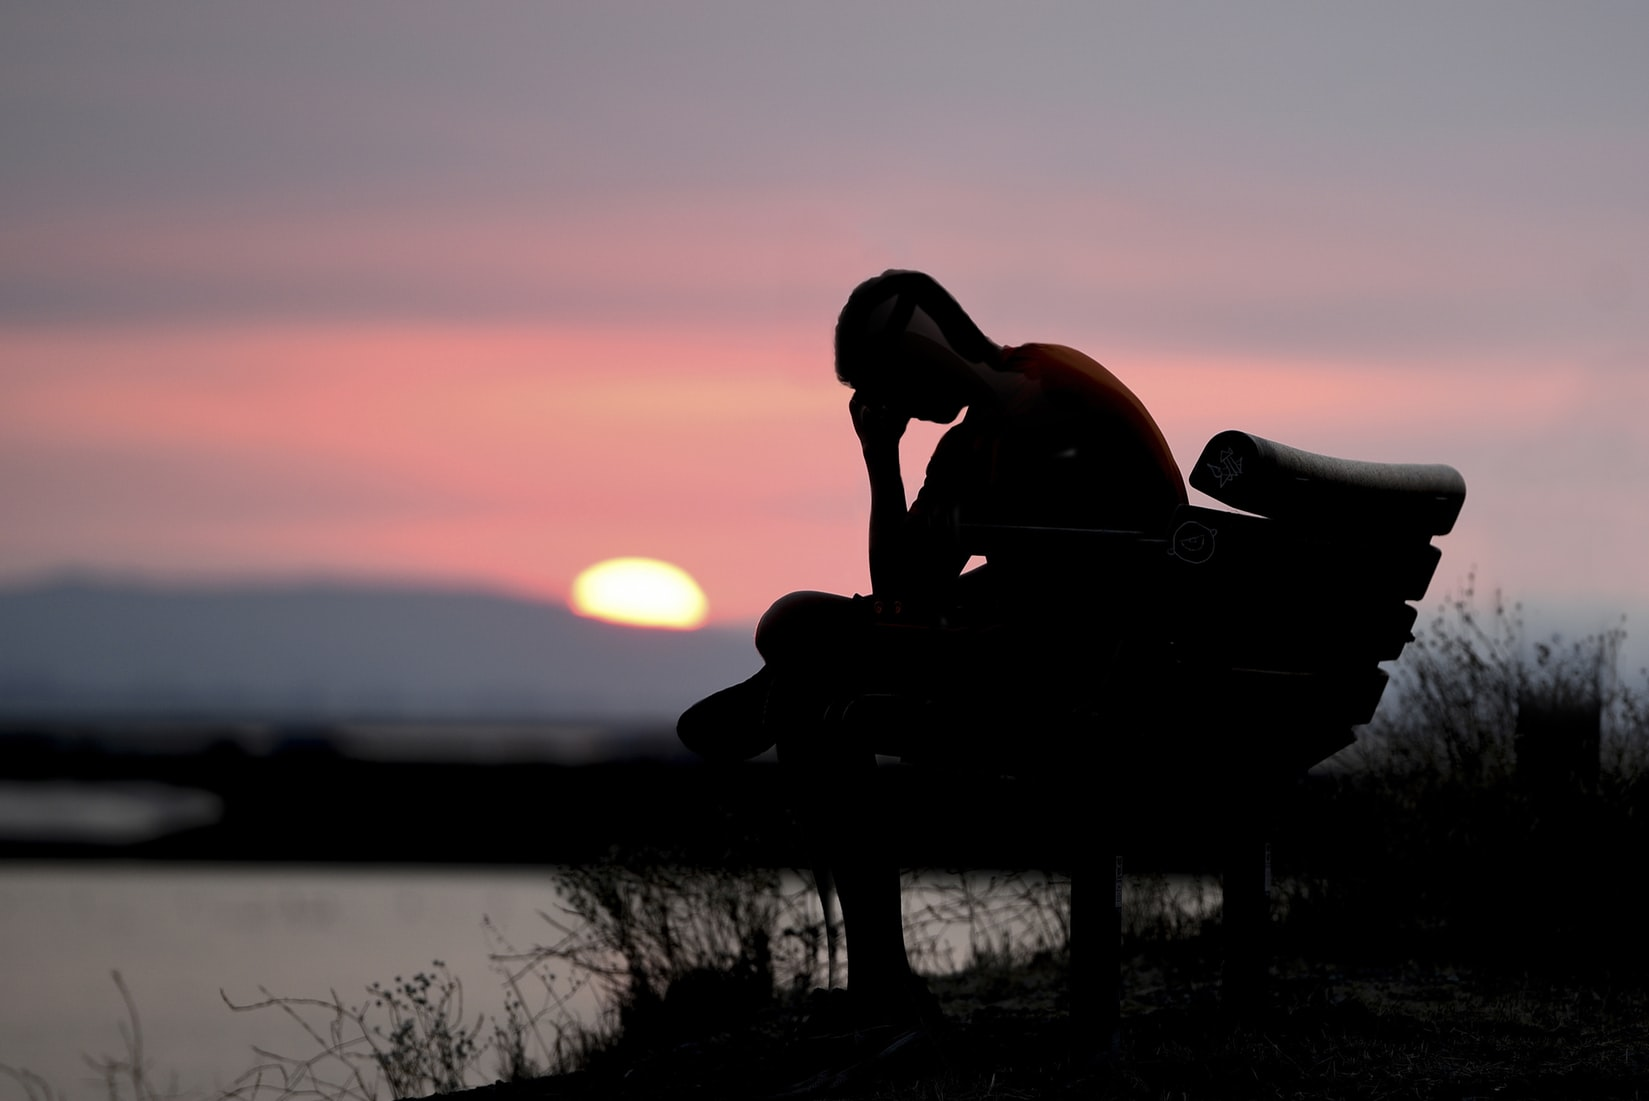 Silhouette of contemplative man on a bench at sunset.